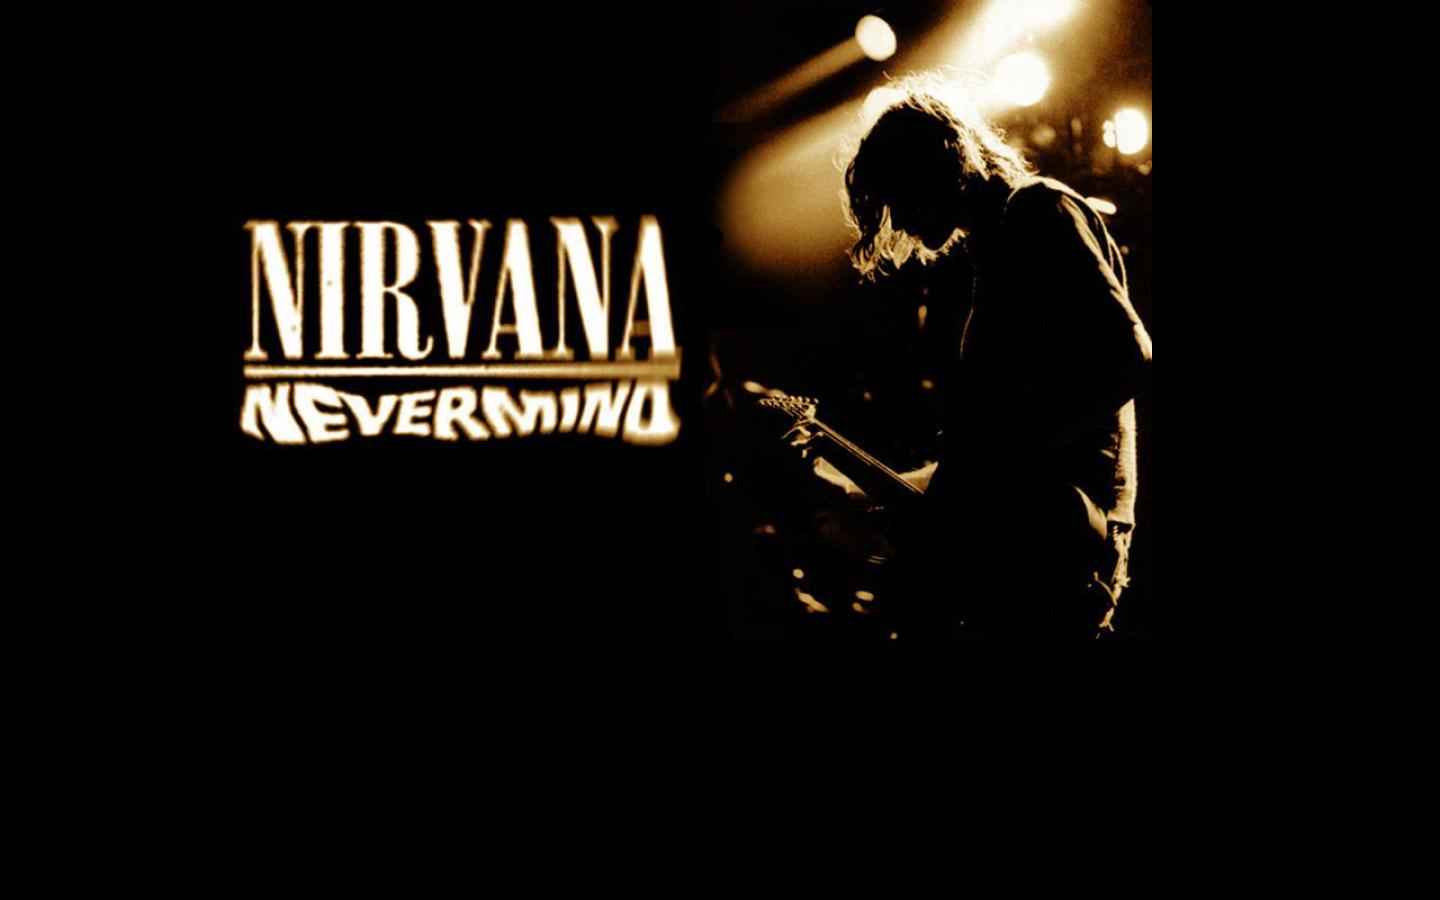 Nirvana Wallpaper #4 1440 x 900